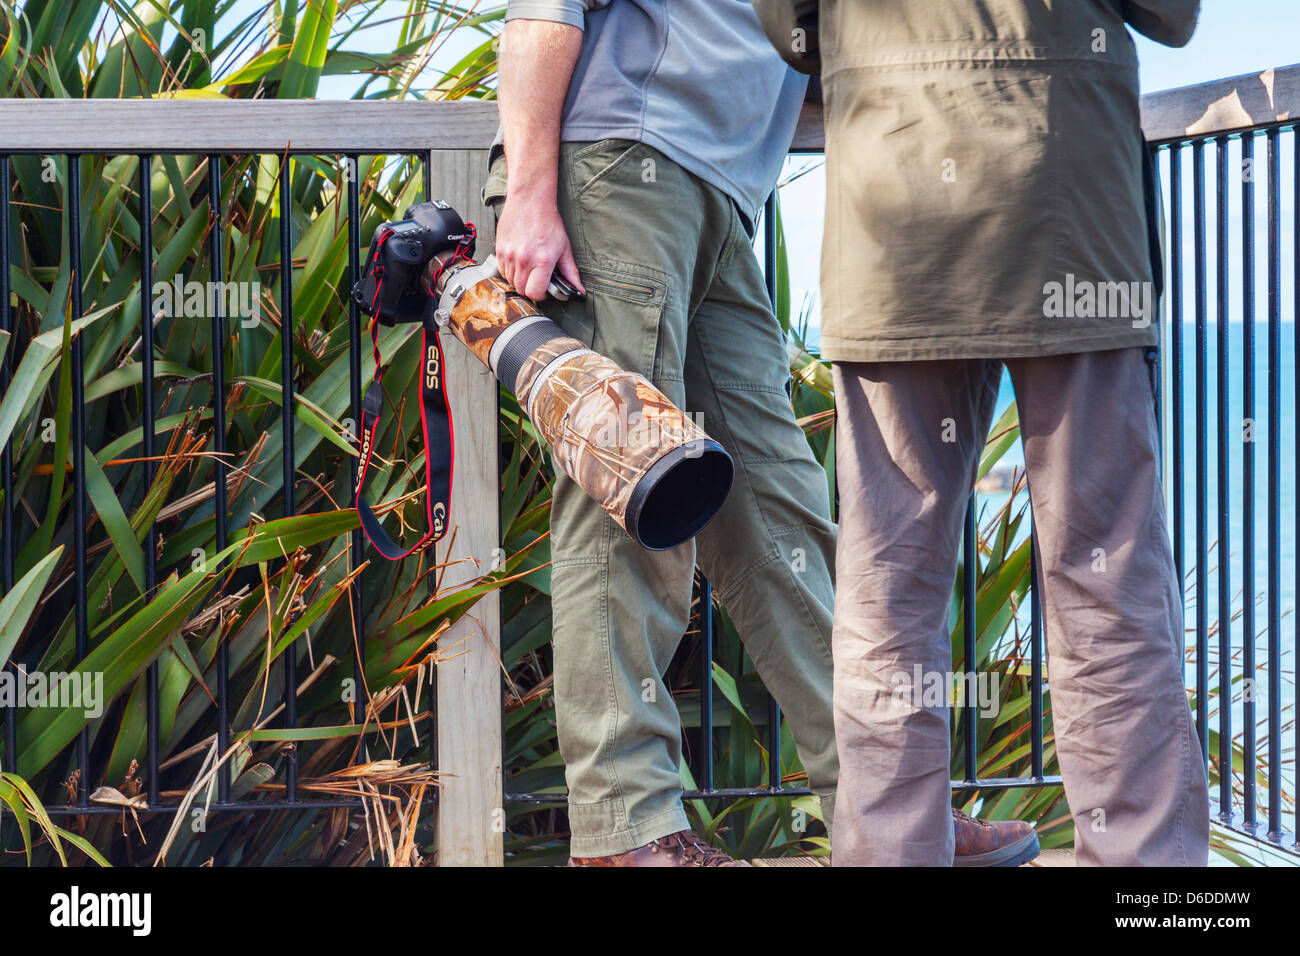 Wildlife photographer with Canon camera and enormous lens with camouflage wrap. - Stock Image